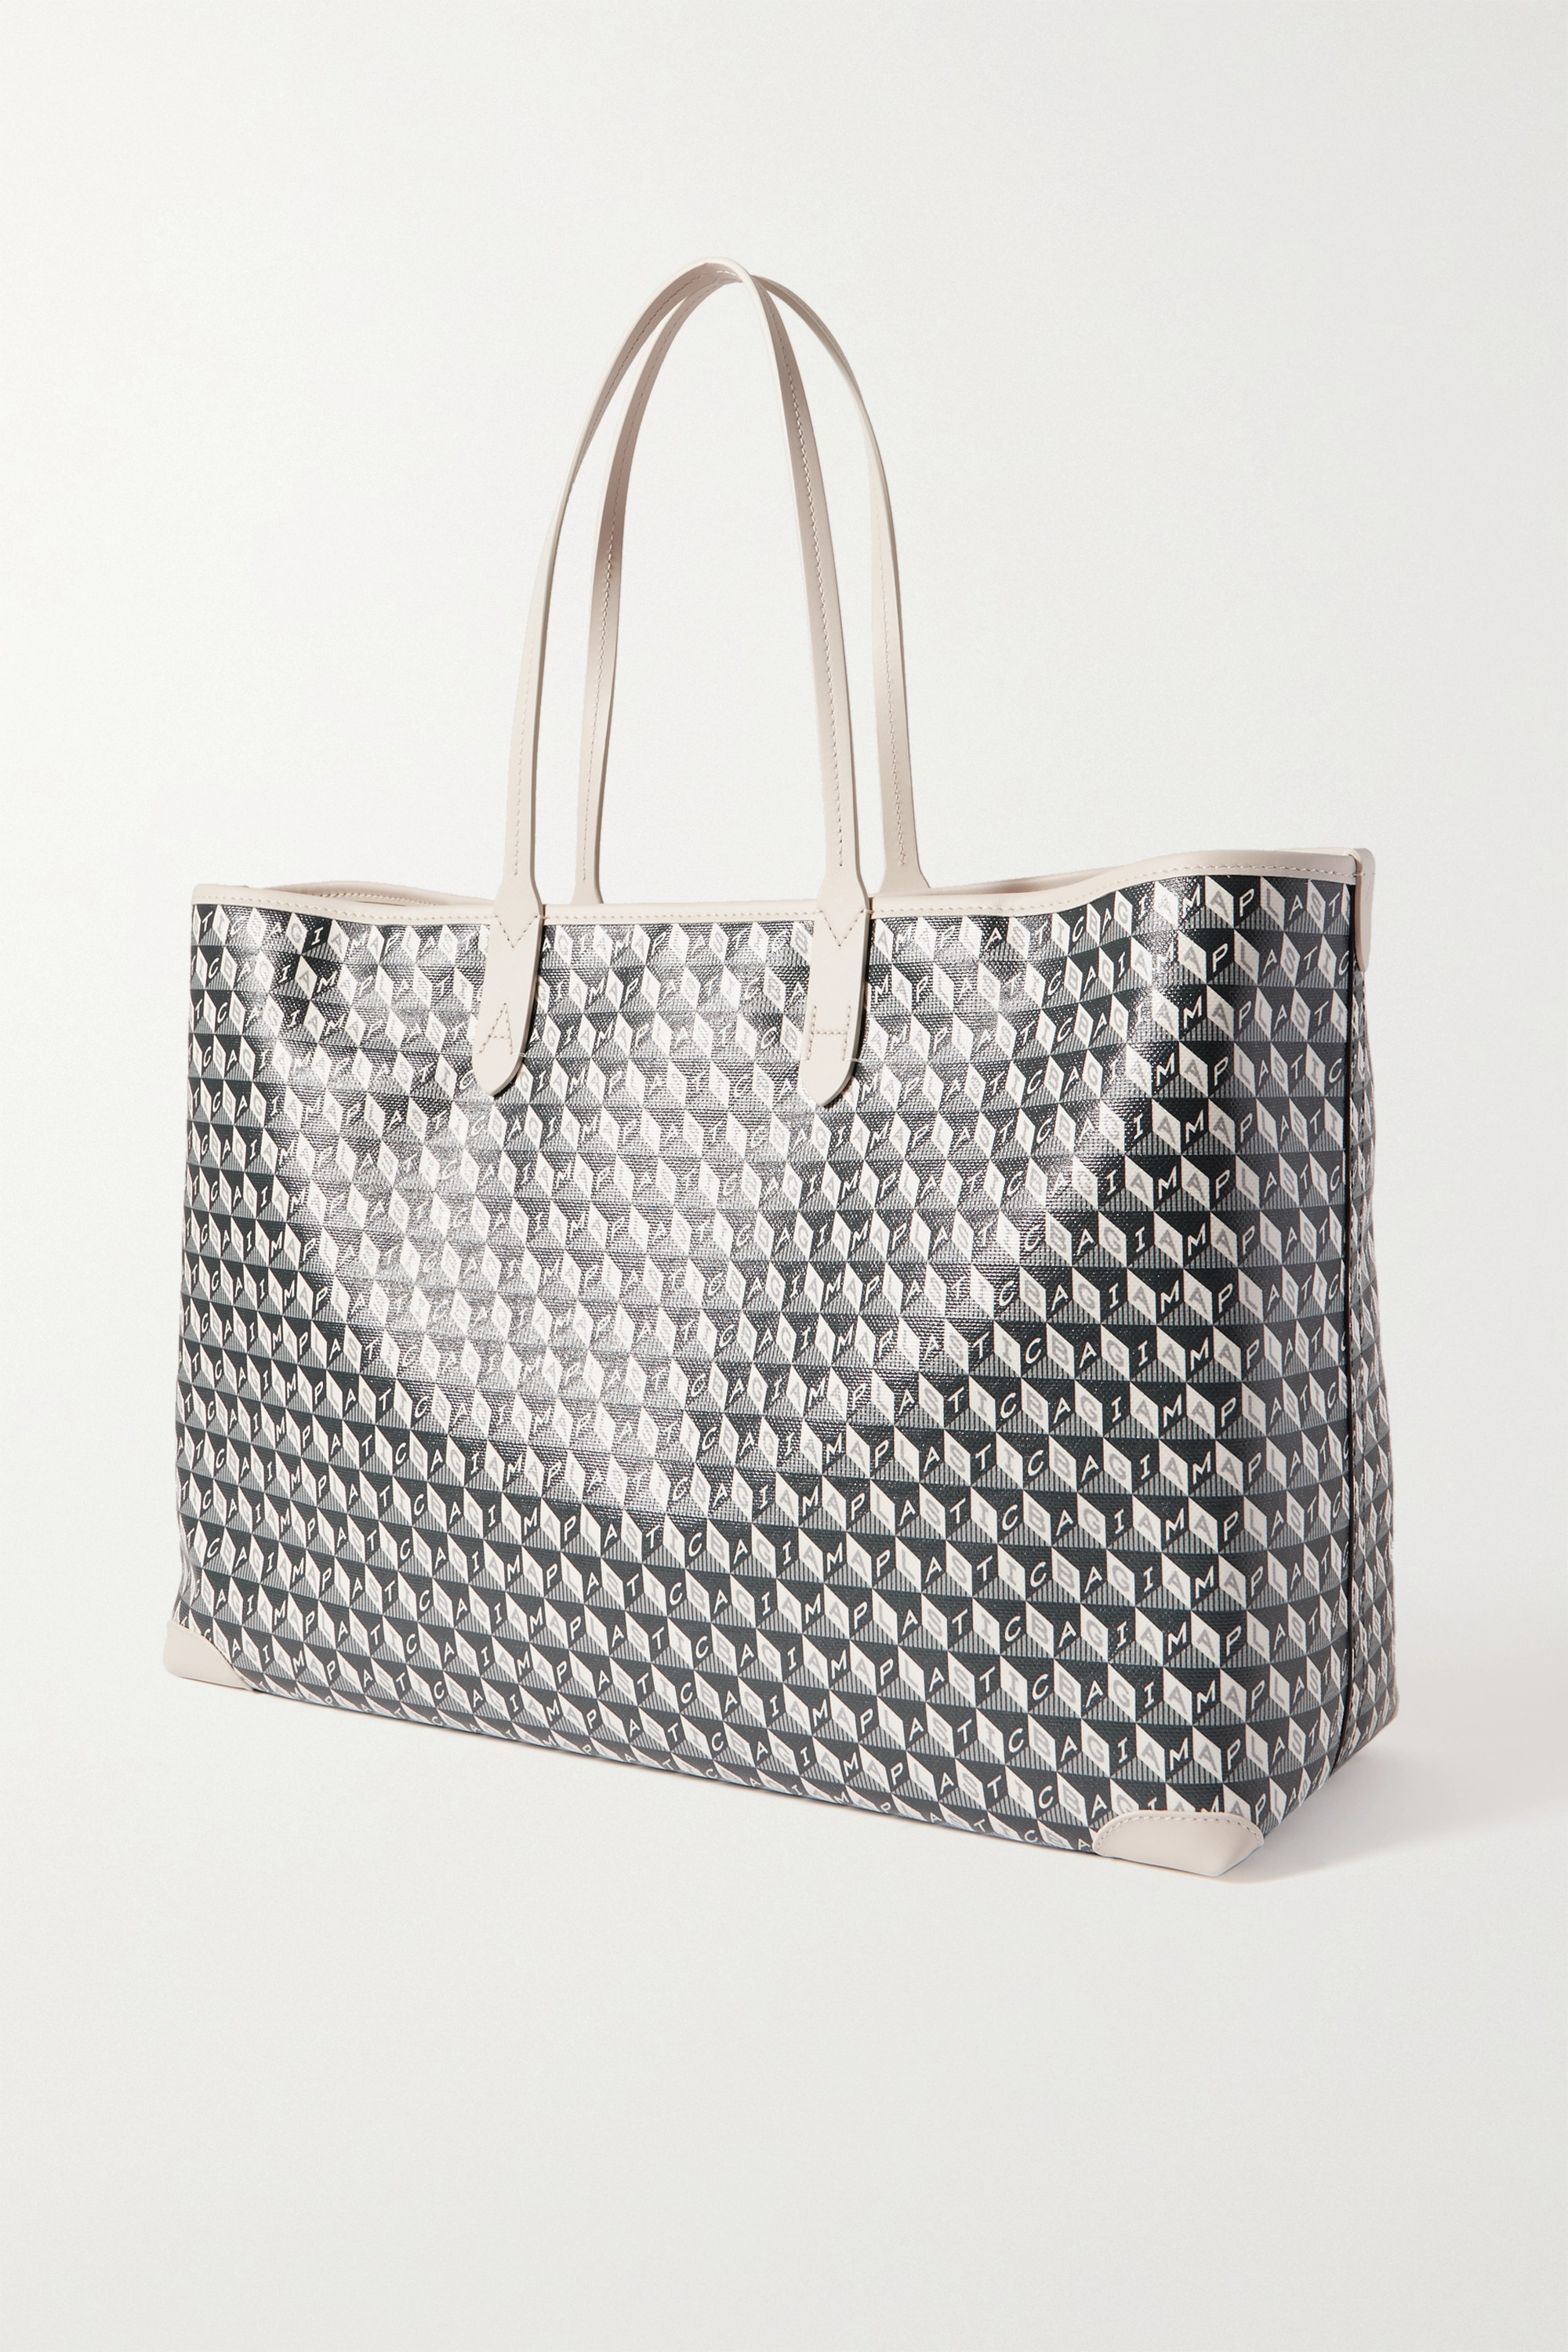 Anya Hindmarch I Am A Plastic Bag appliquéd leather-trimmed printed coated-canvas tote